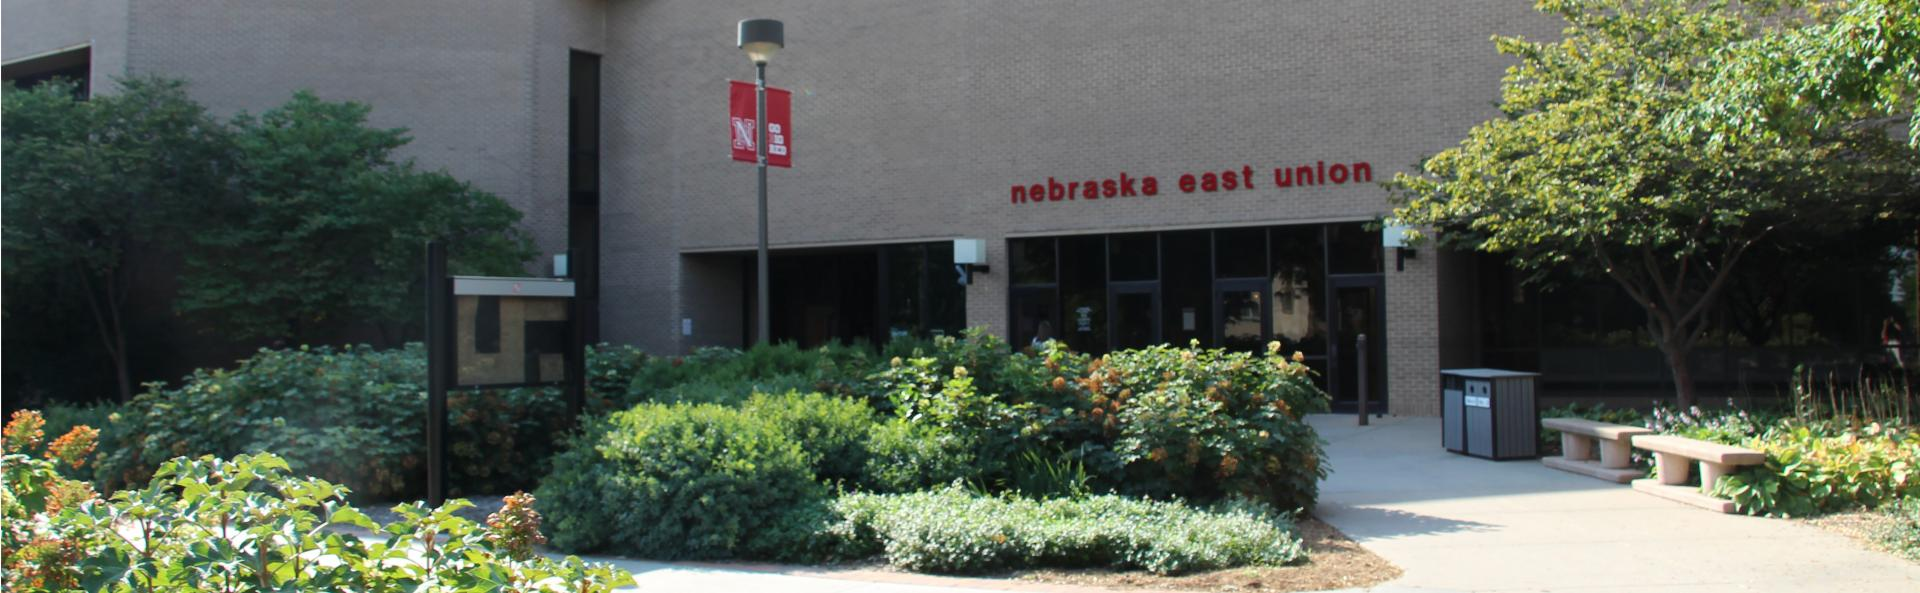 Nebraska East Union